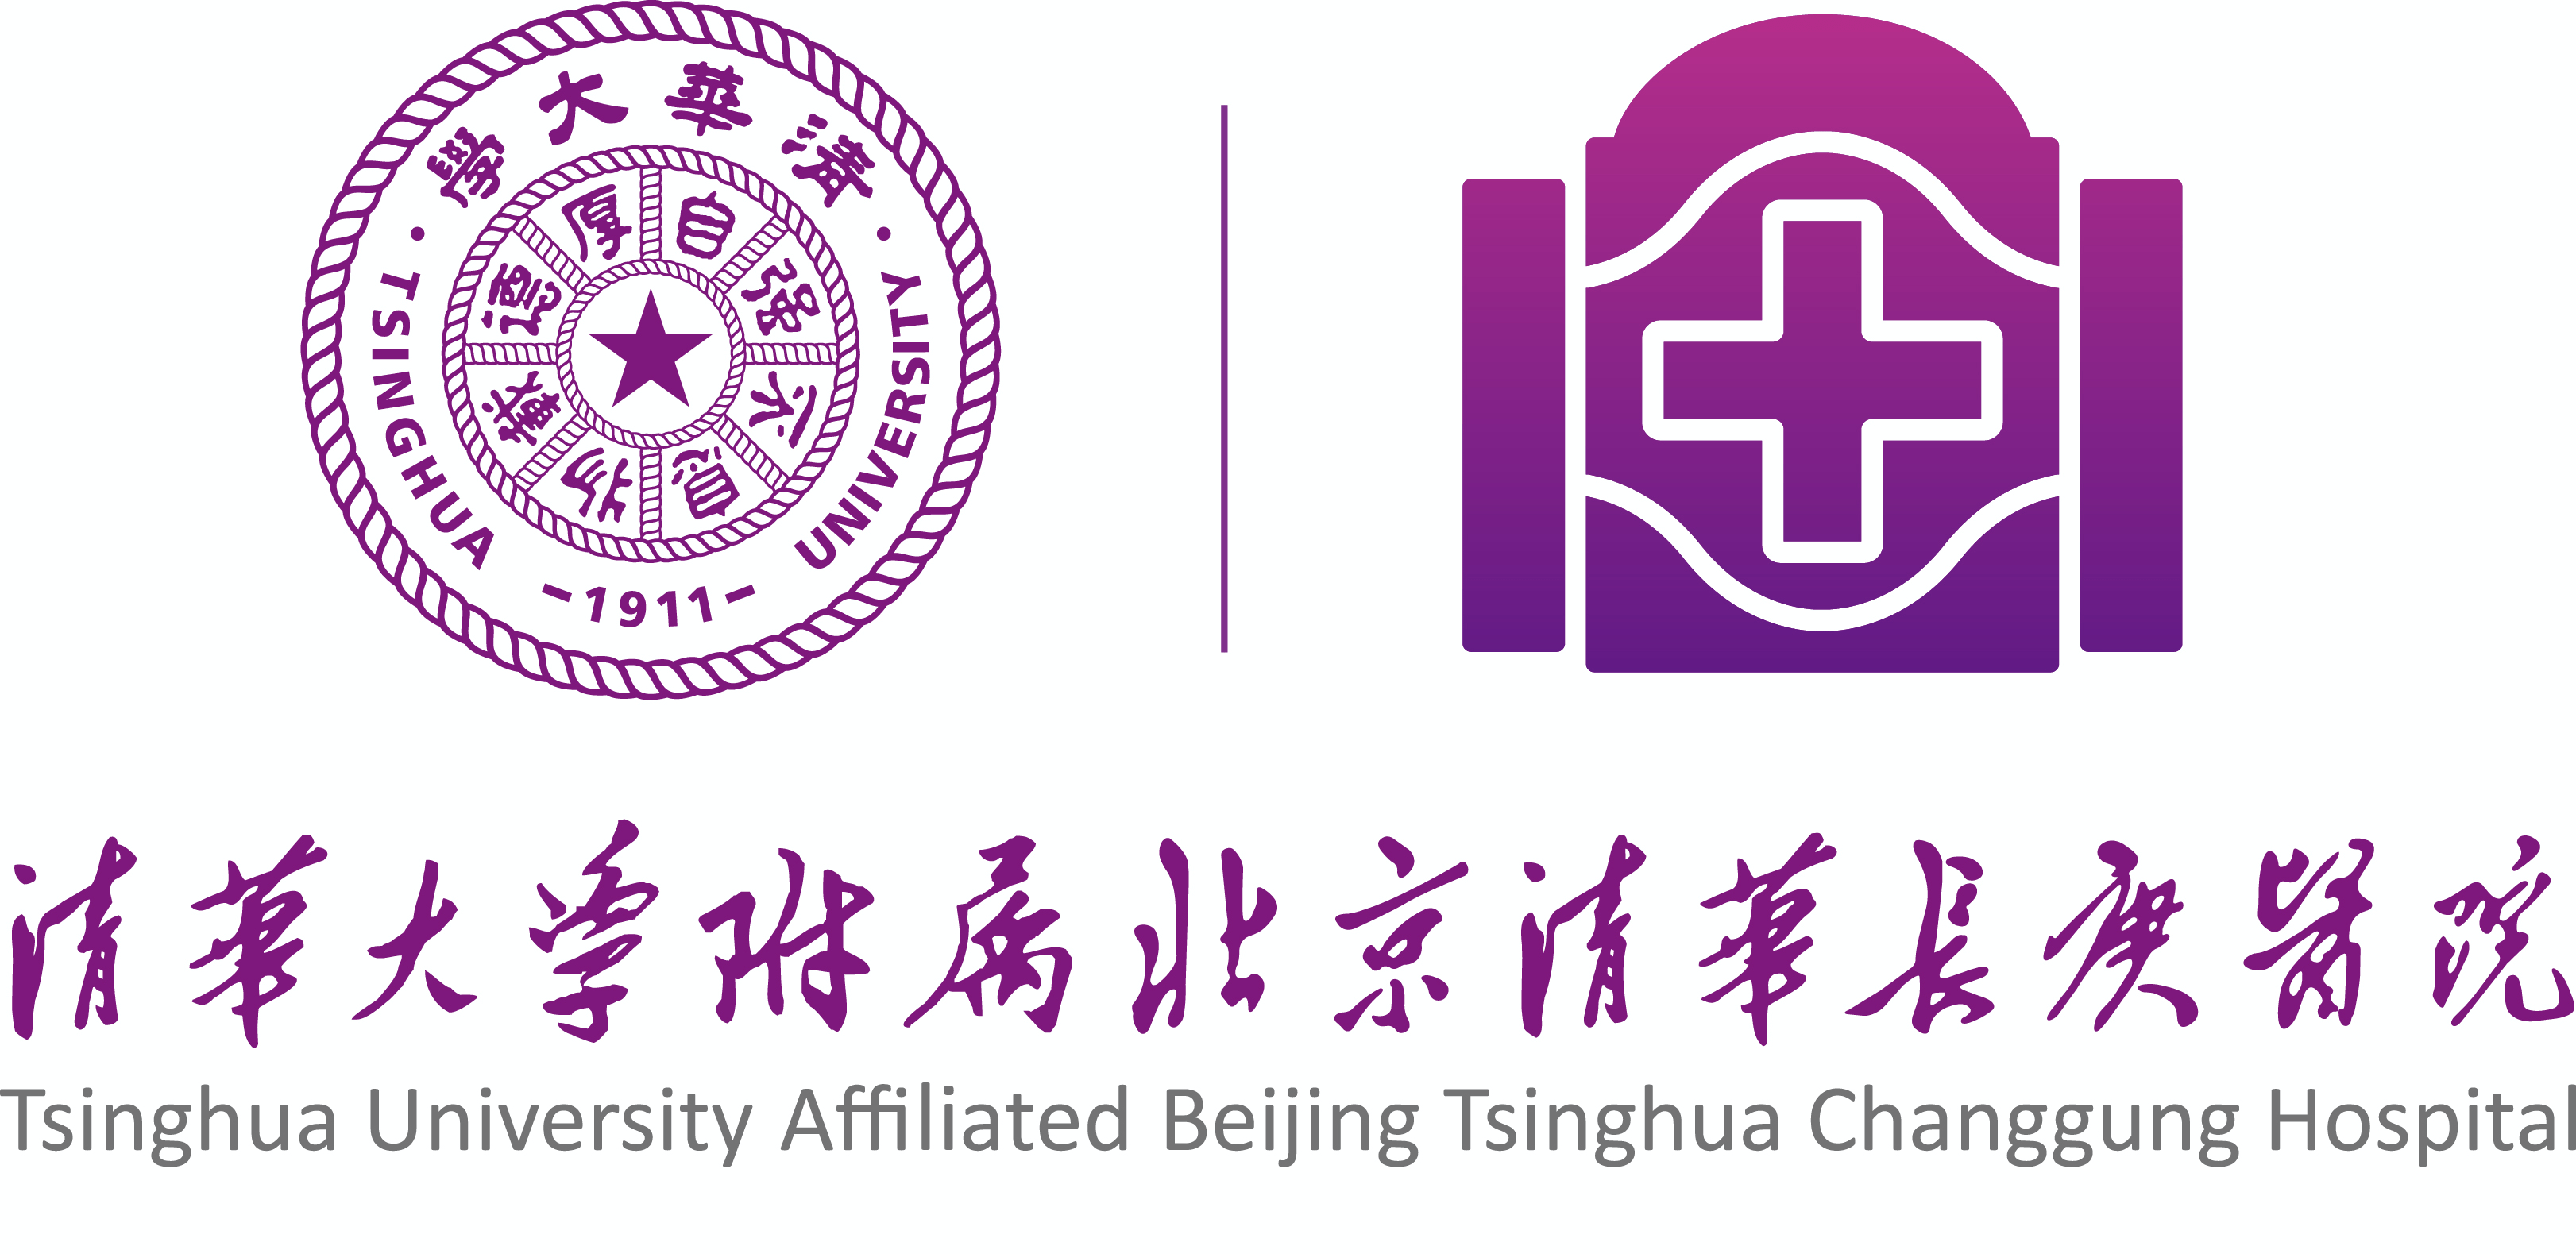 Intelligent Haptronic Solutions partners with Tsinghua Changgung Hospital for clinical validation of our IHS Endoscopy Simulator